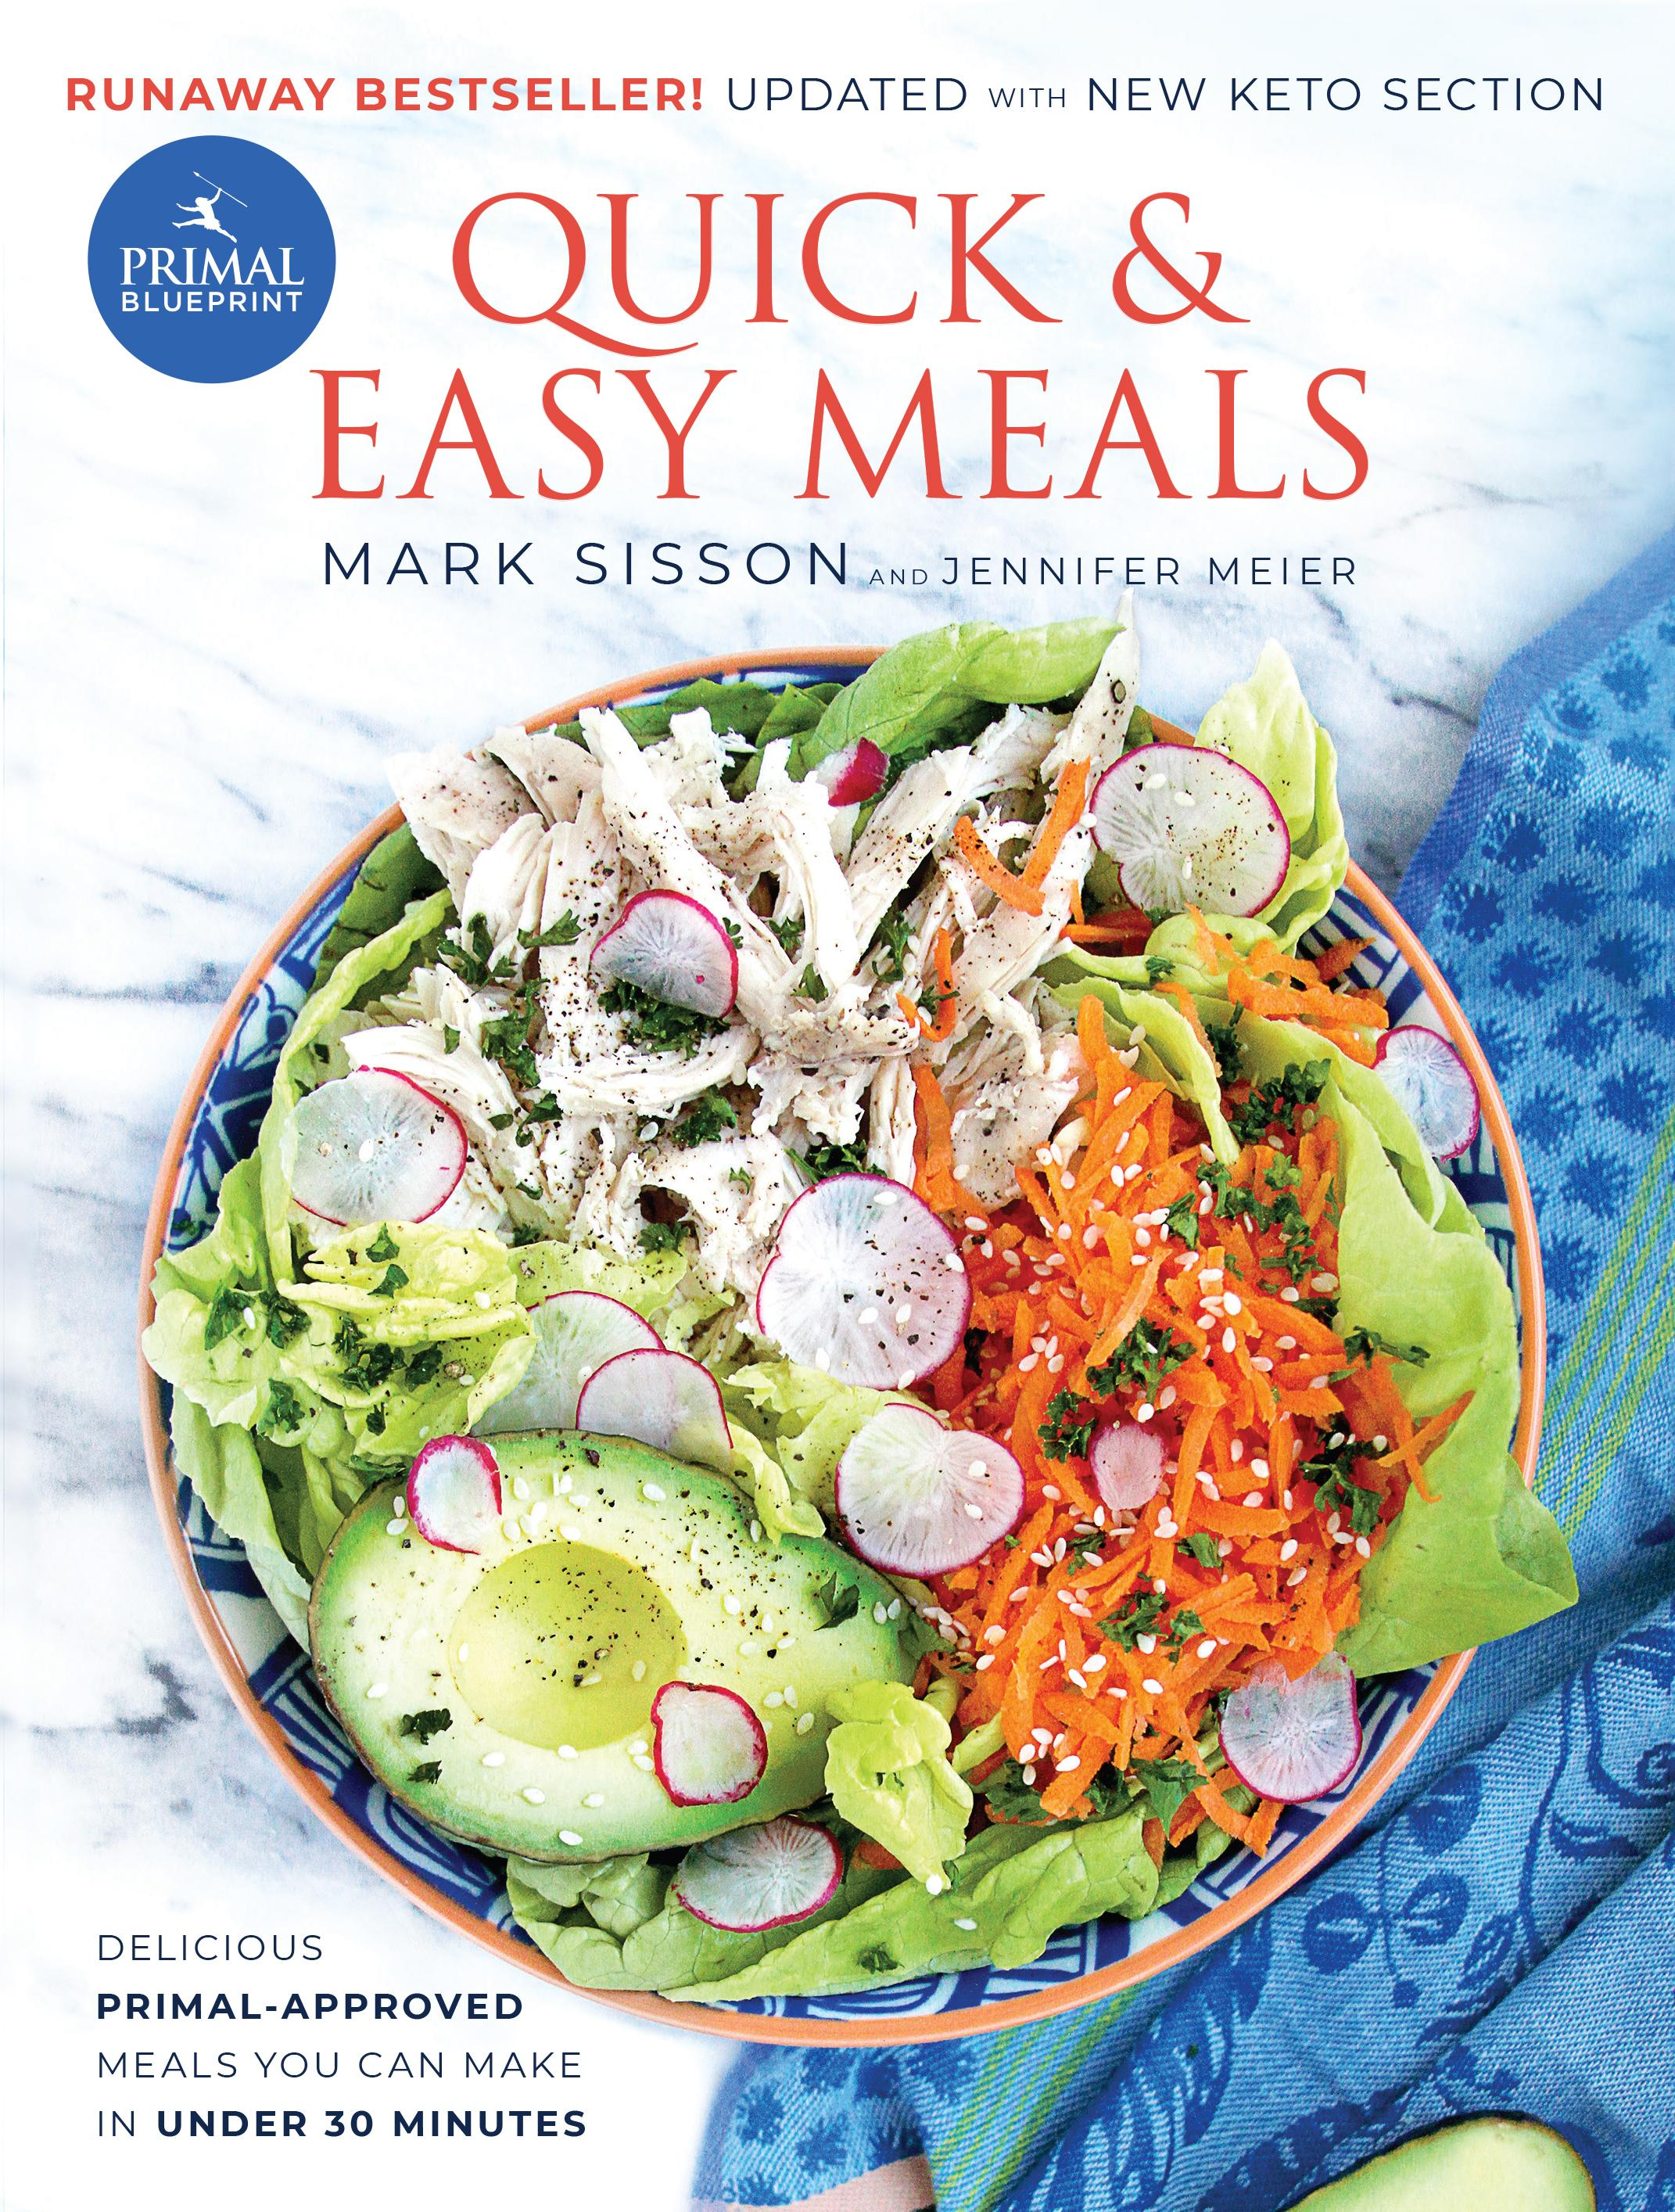 Primal blueprint quick and easy meals delicious primal approved primal blueprint quick and easy meals delicious primal approved meals you can make in under 30 minutes hardcover walmart malvernweather Image collections